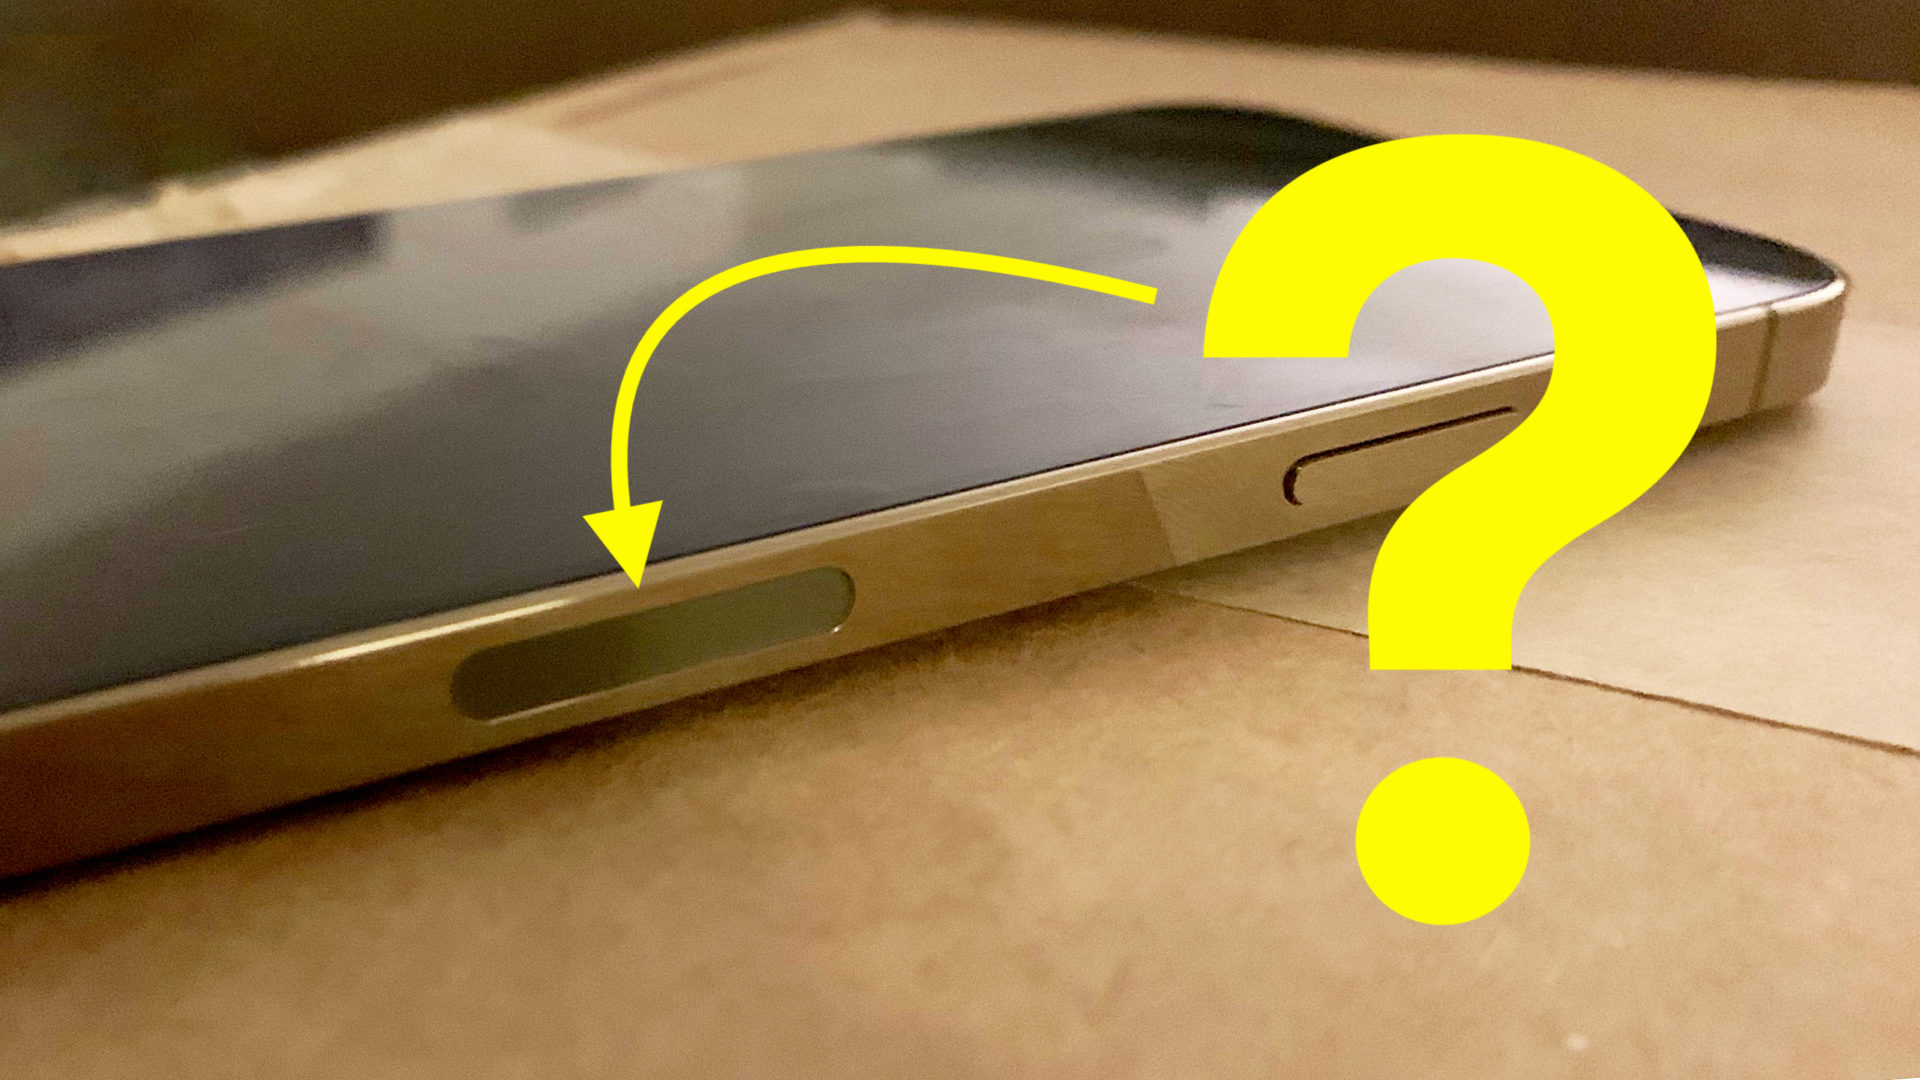 Why The Iphone 12 Has A Black Oval Indentation On The Side Payette Forward